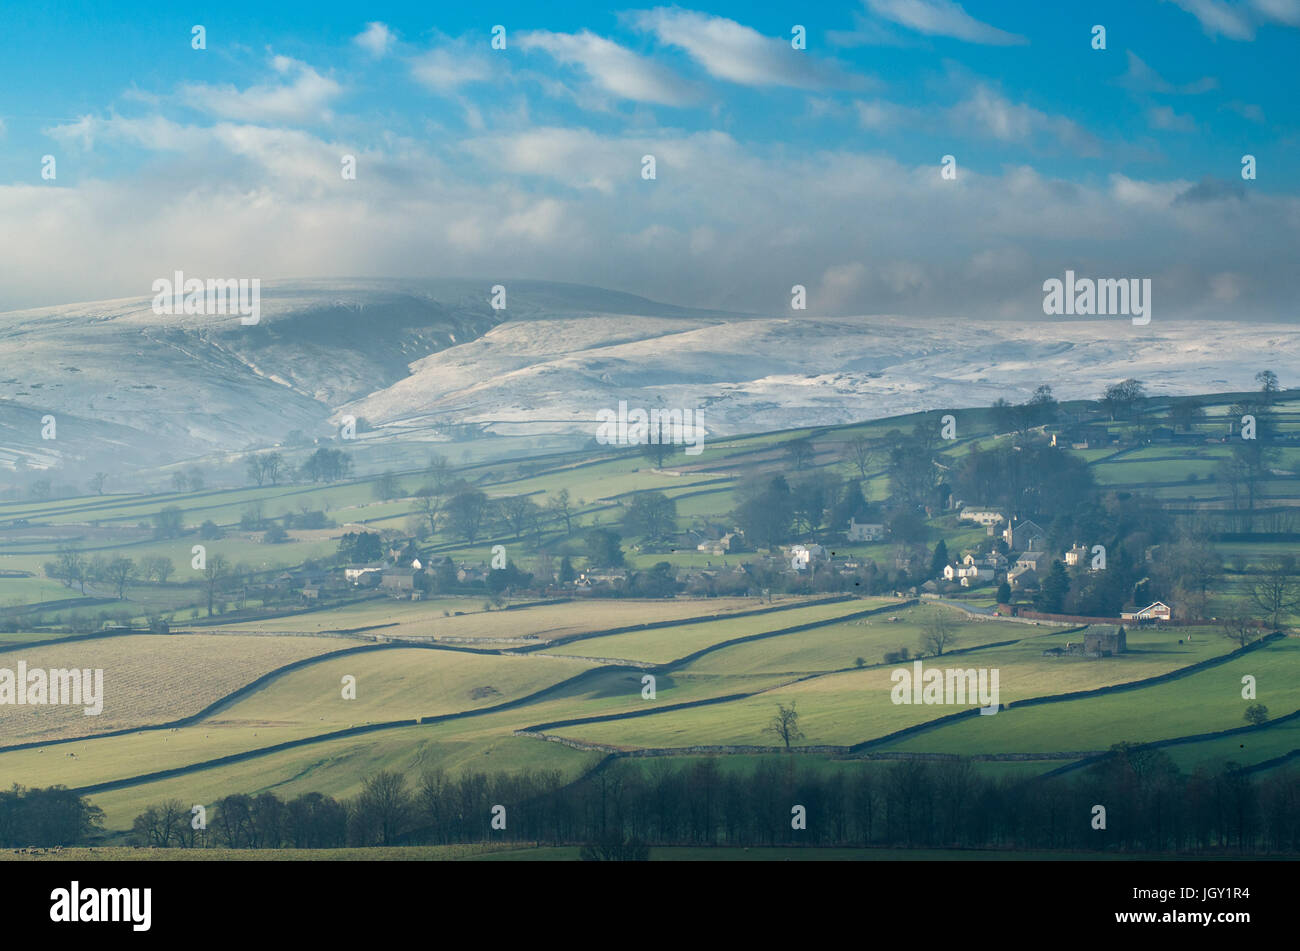 Landscape view of Helton village, The Lake District, UK - Stock Image